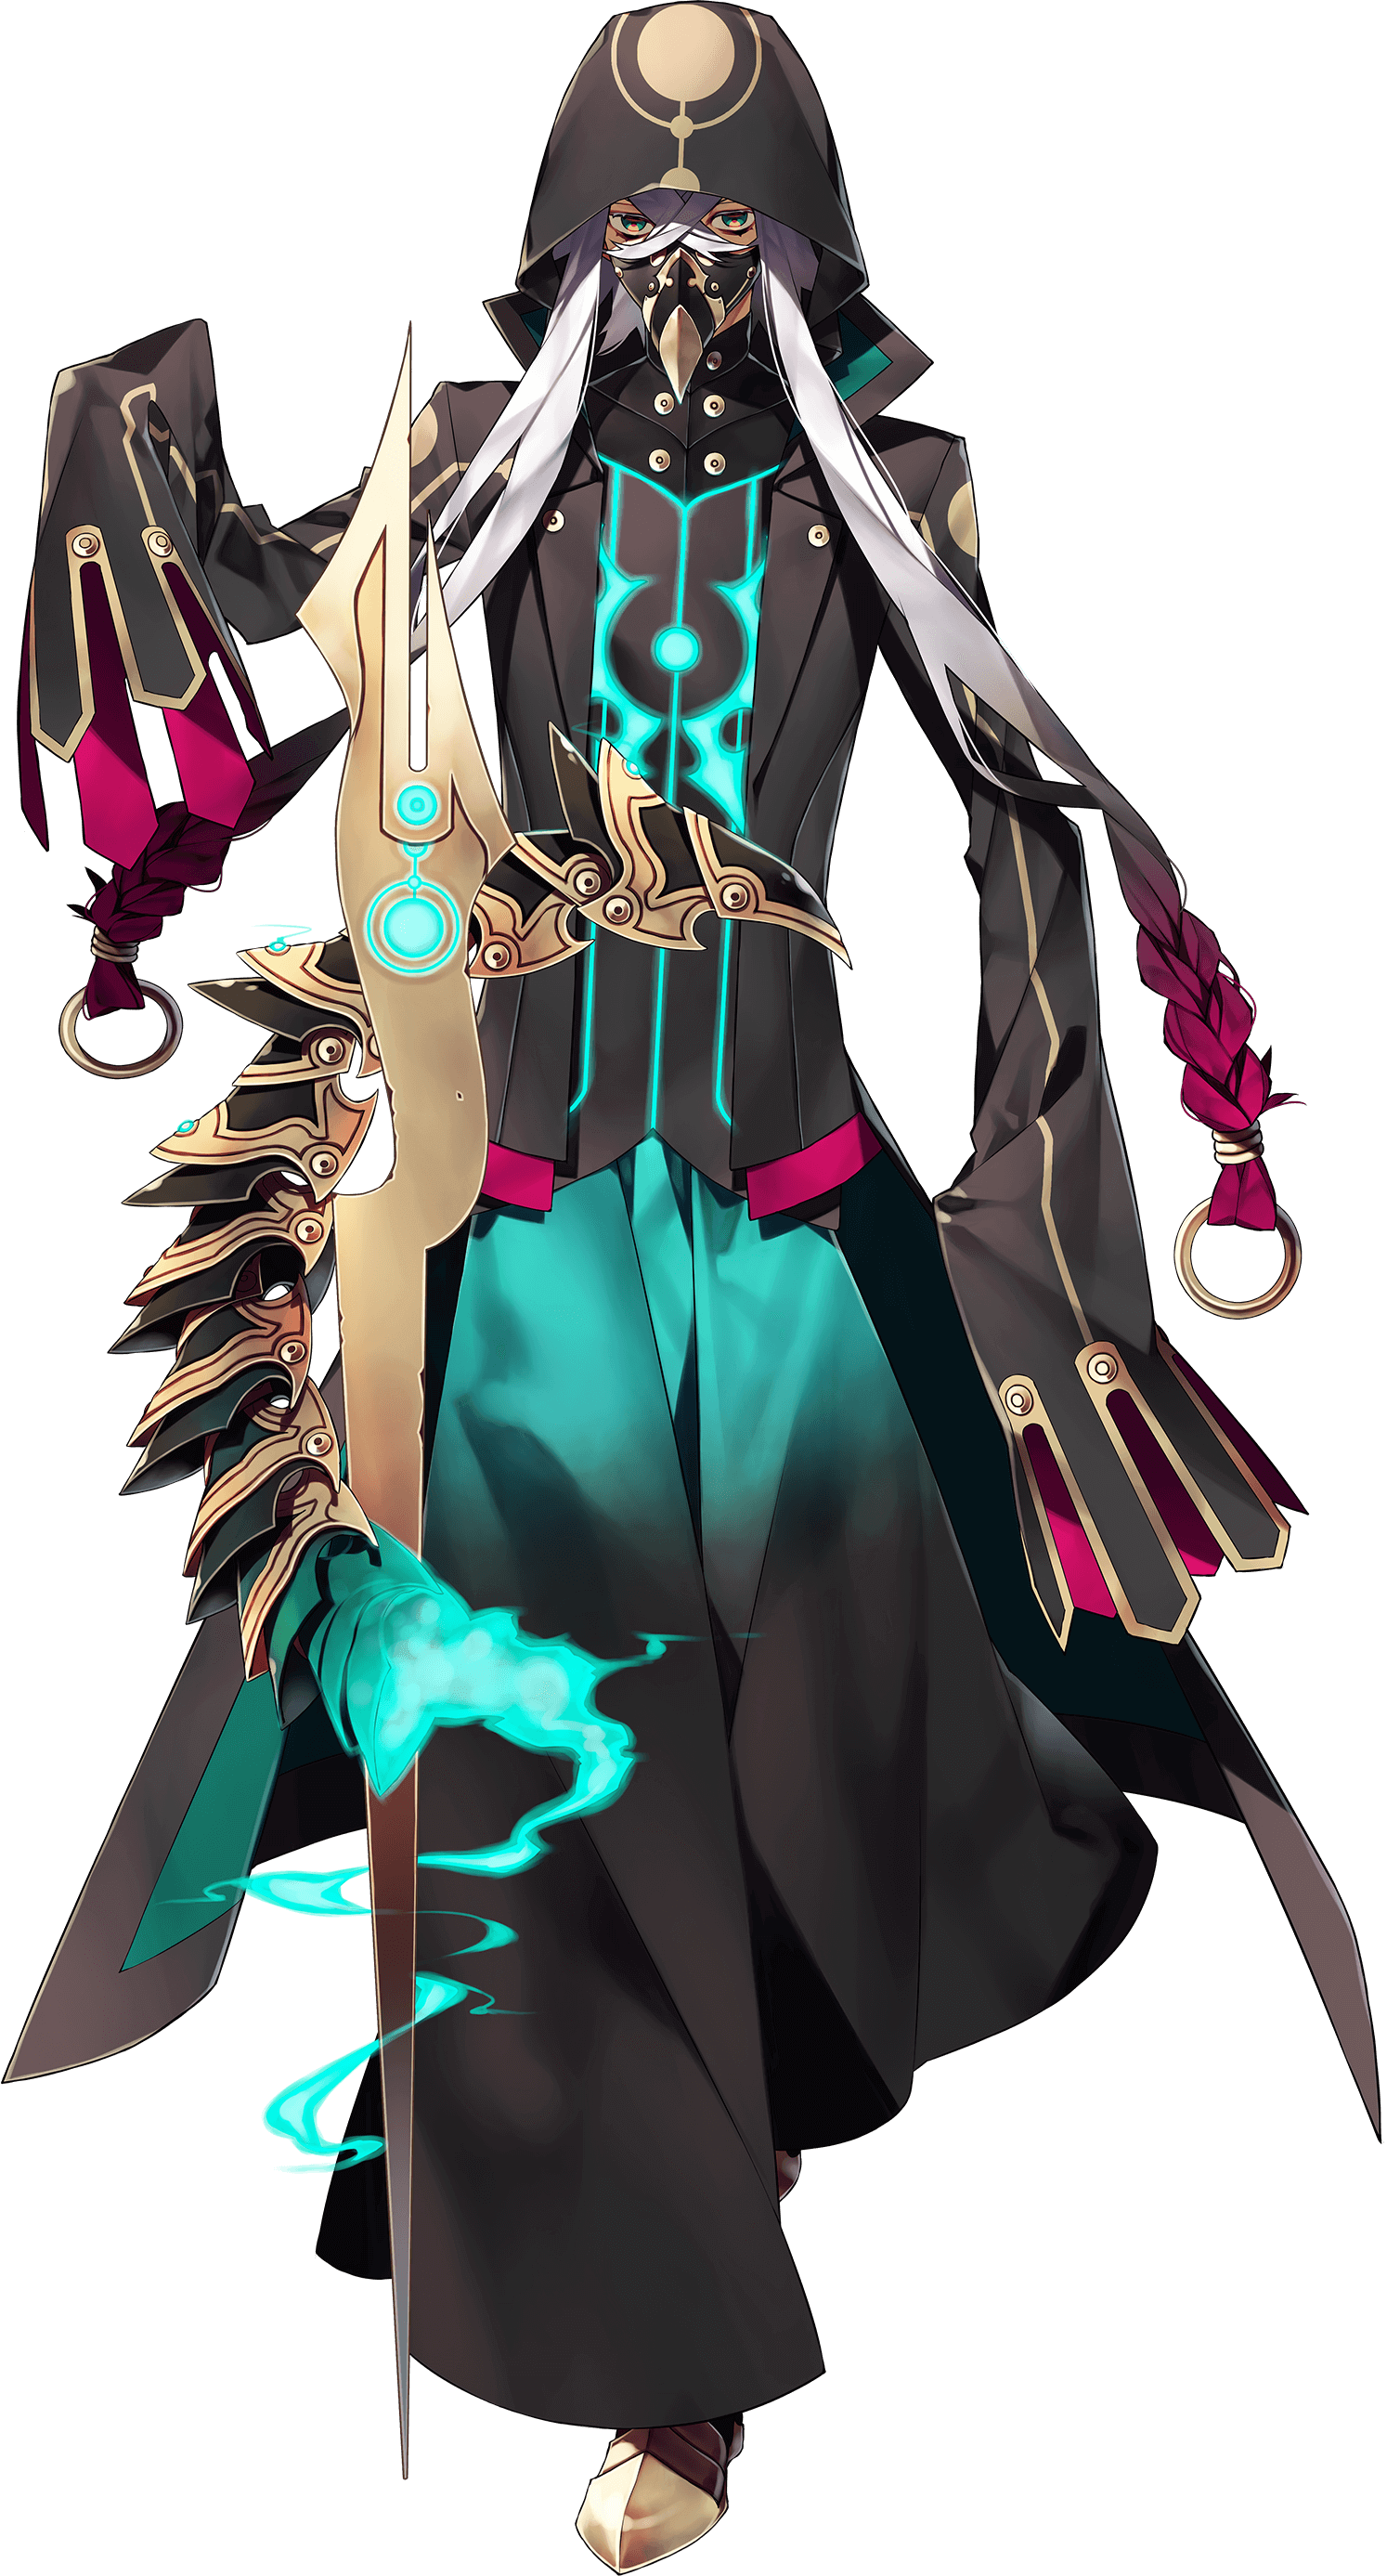 Caster (Fate/Grand Order - Asclepius)